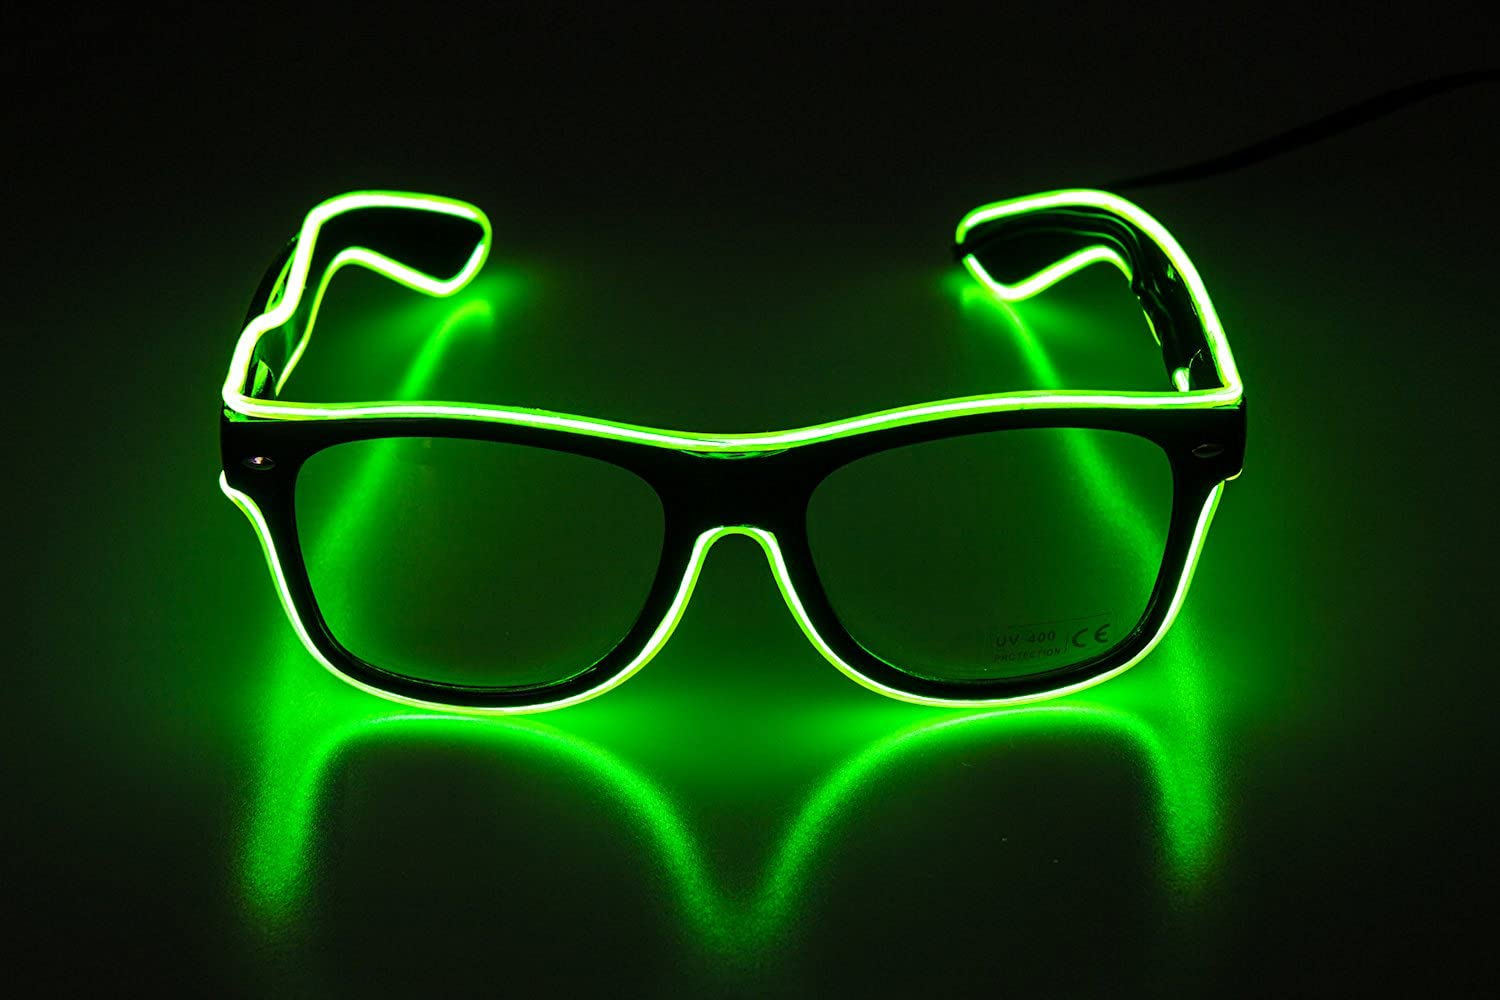 Glow Eye Glasses With Light Up Glasses El Wire Glowing Party Rave Glasses For Halloween,Party Favor